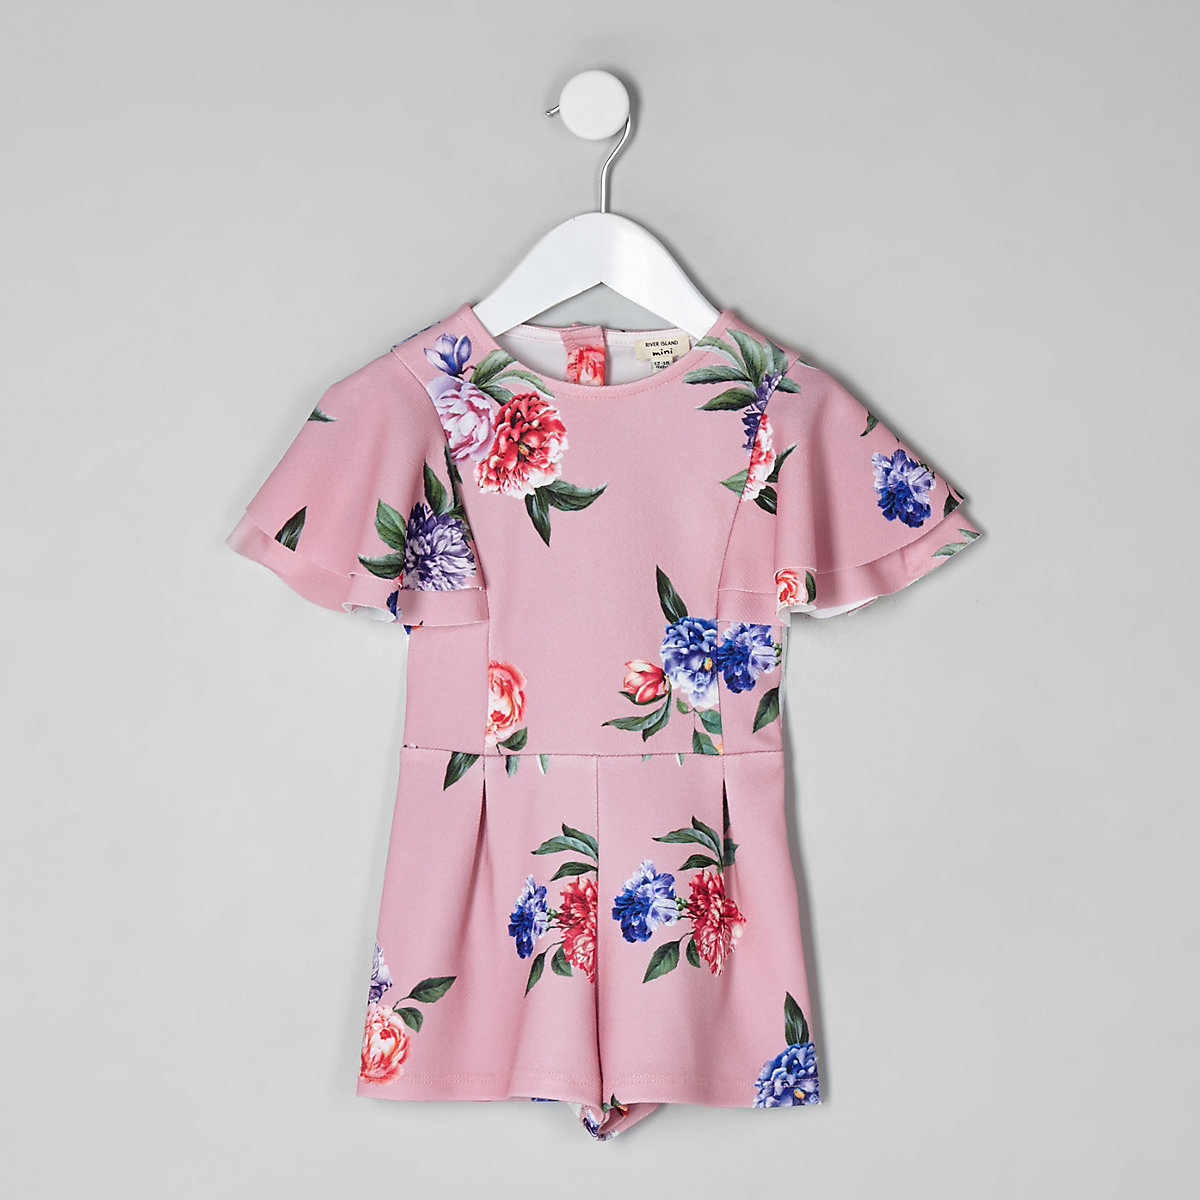 390887f0e Mini girls pink floral frill playsuit - Baby Girls Playsuits ...